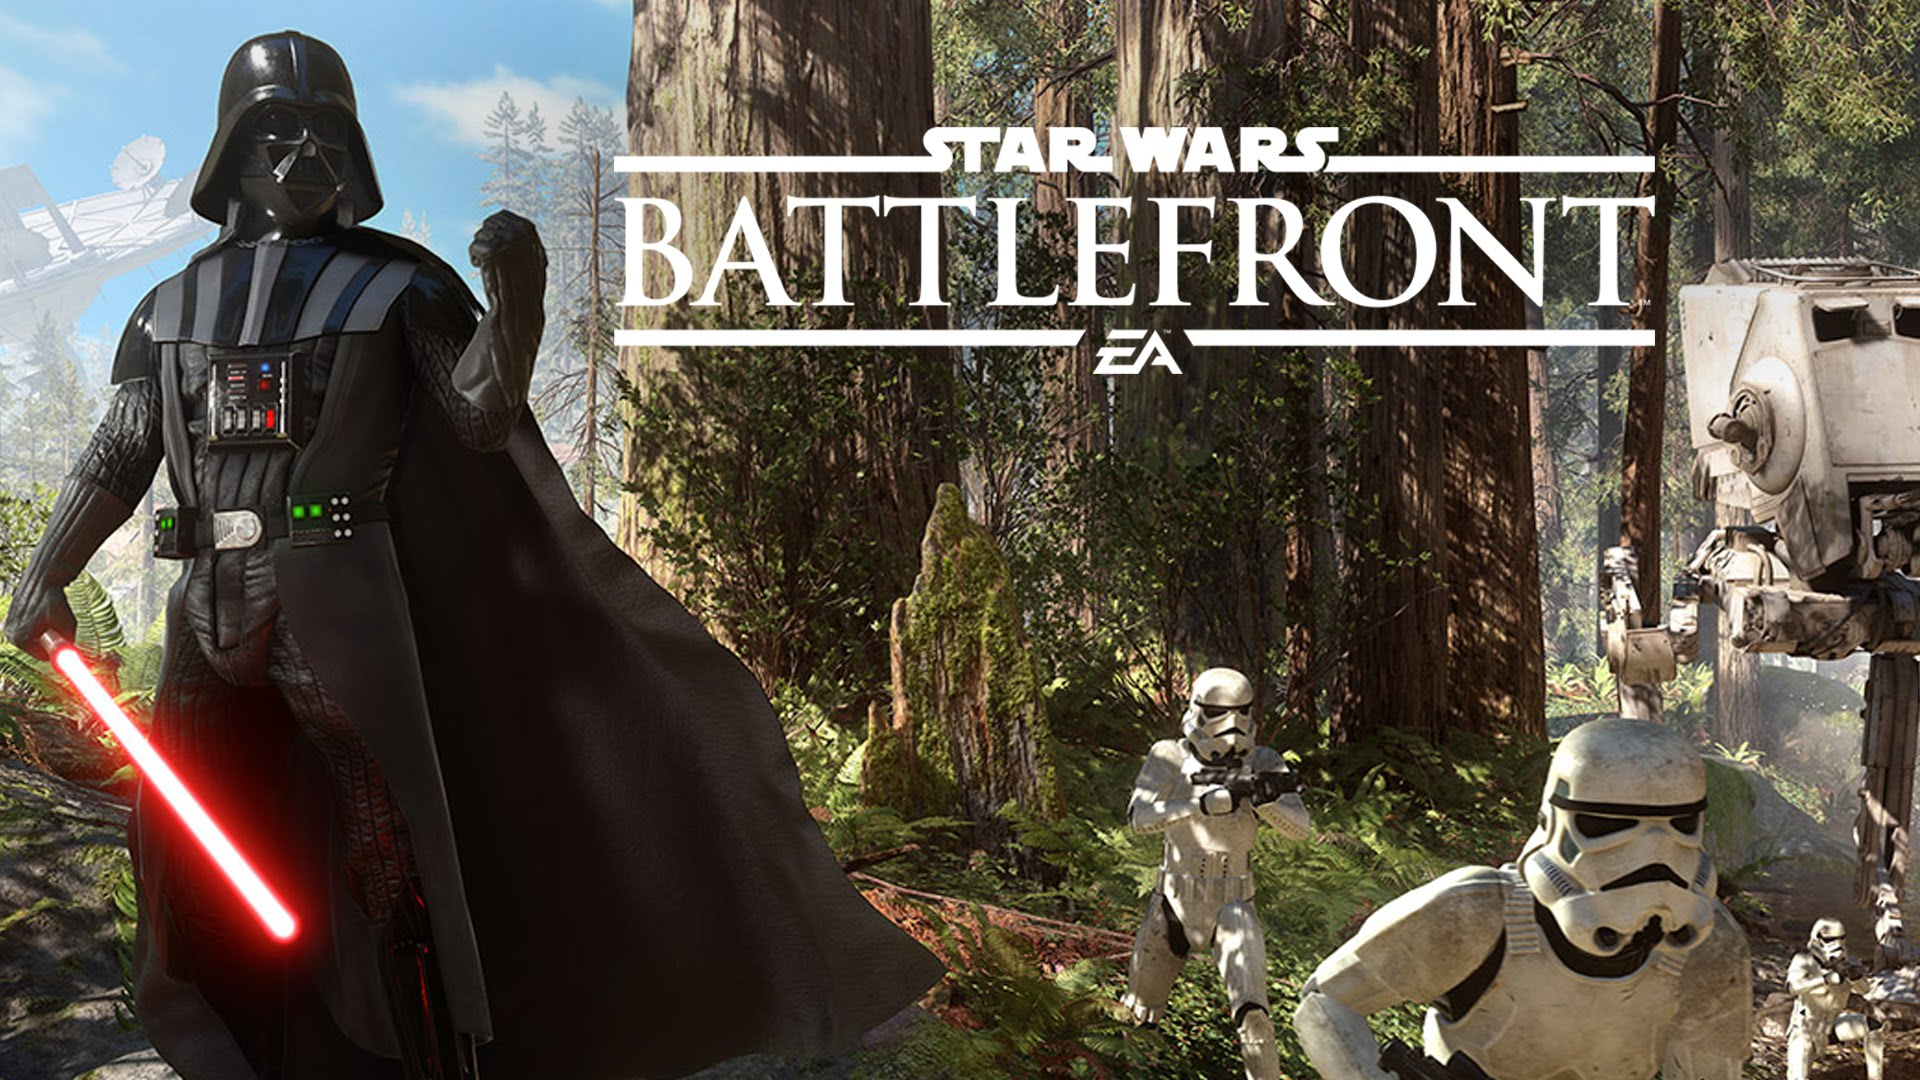 Iphone 6 Default Wallpaper Star Wars Battlefront Wallpapers Pictures Images